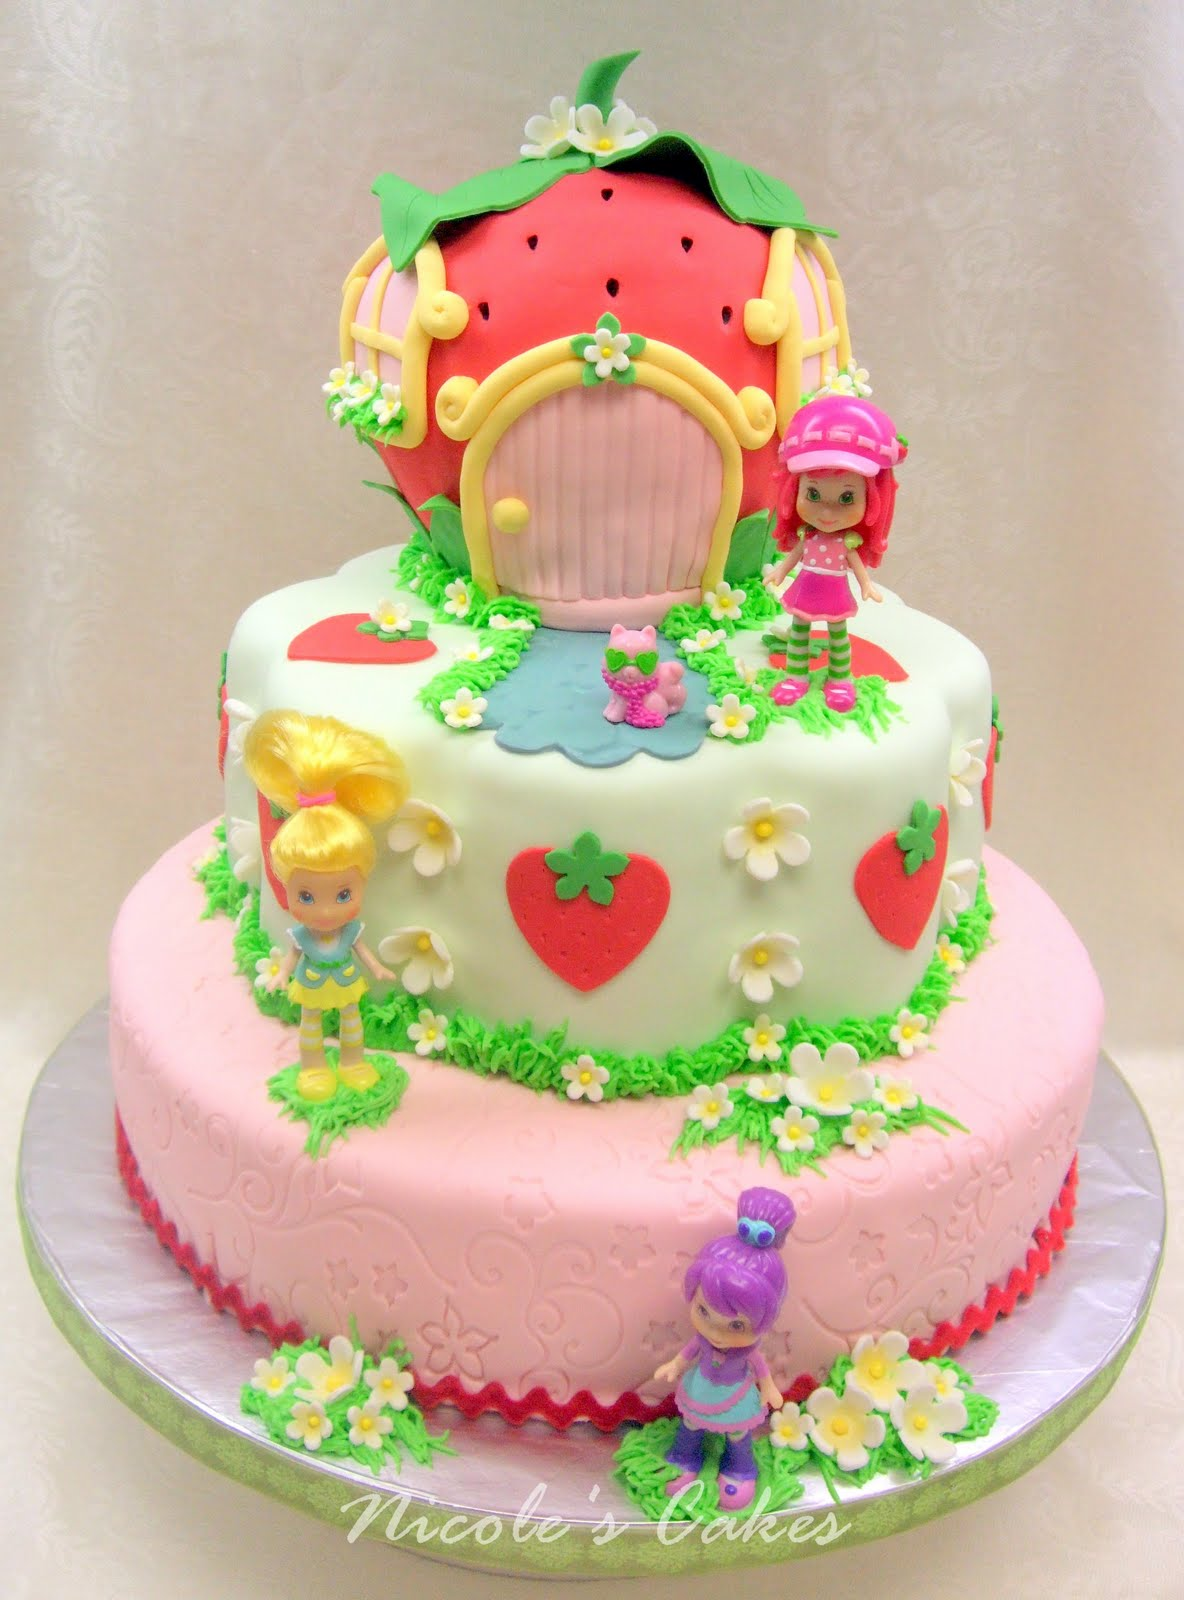 7 Birthday Cake Ideas For Girl Birthday Cakes for Girl